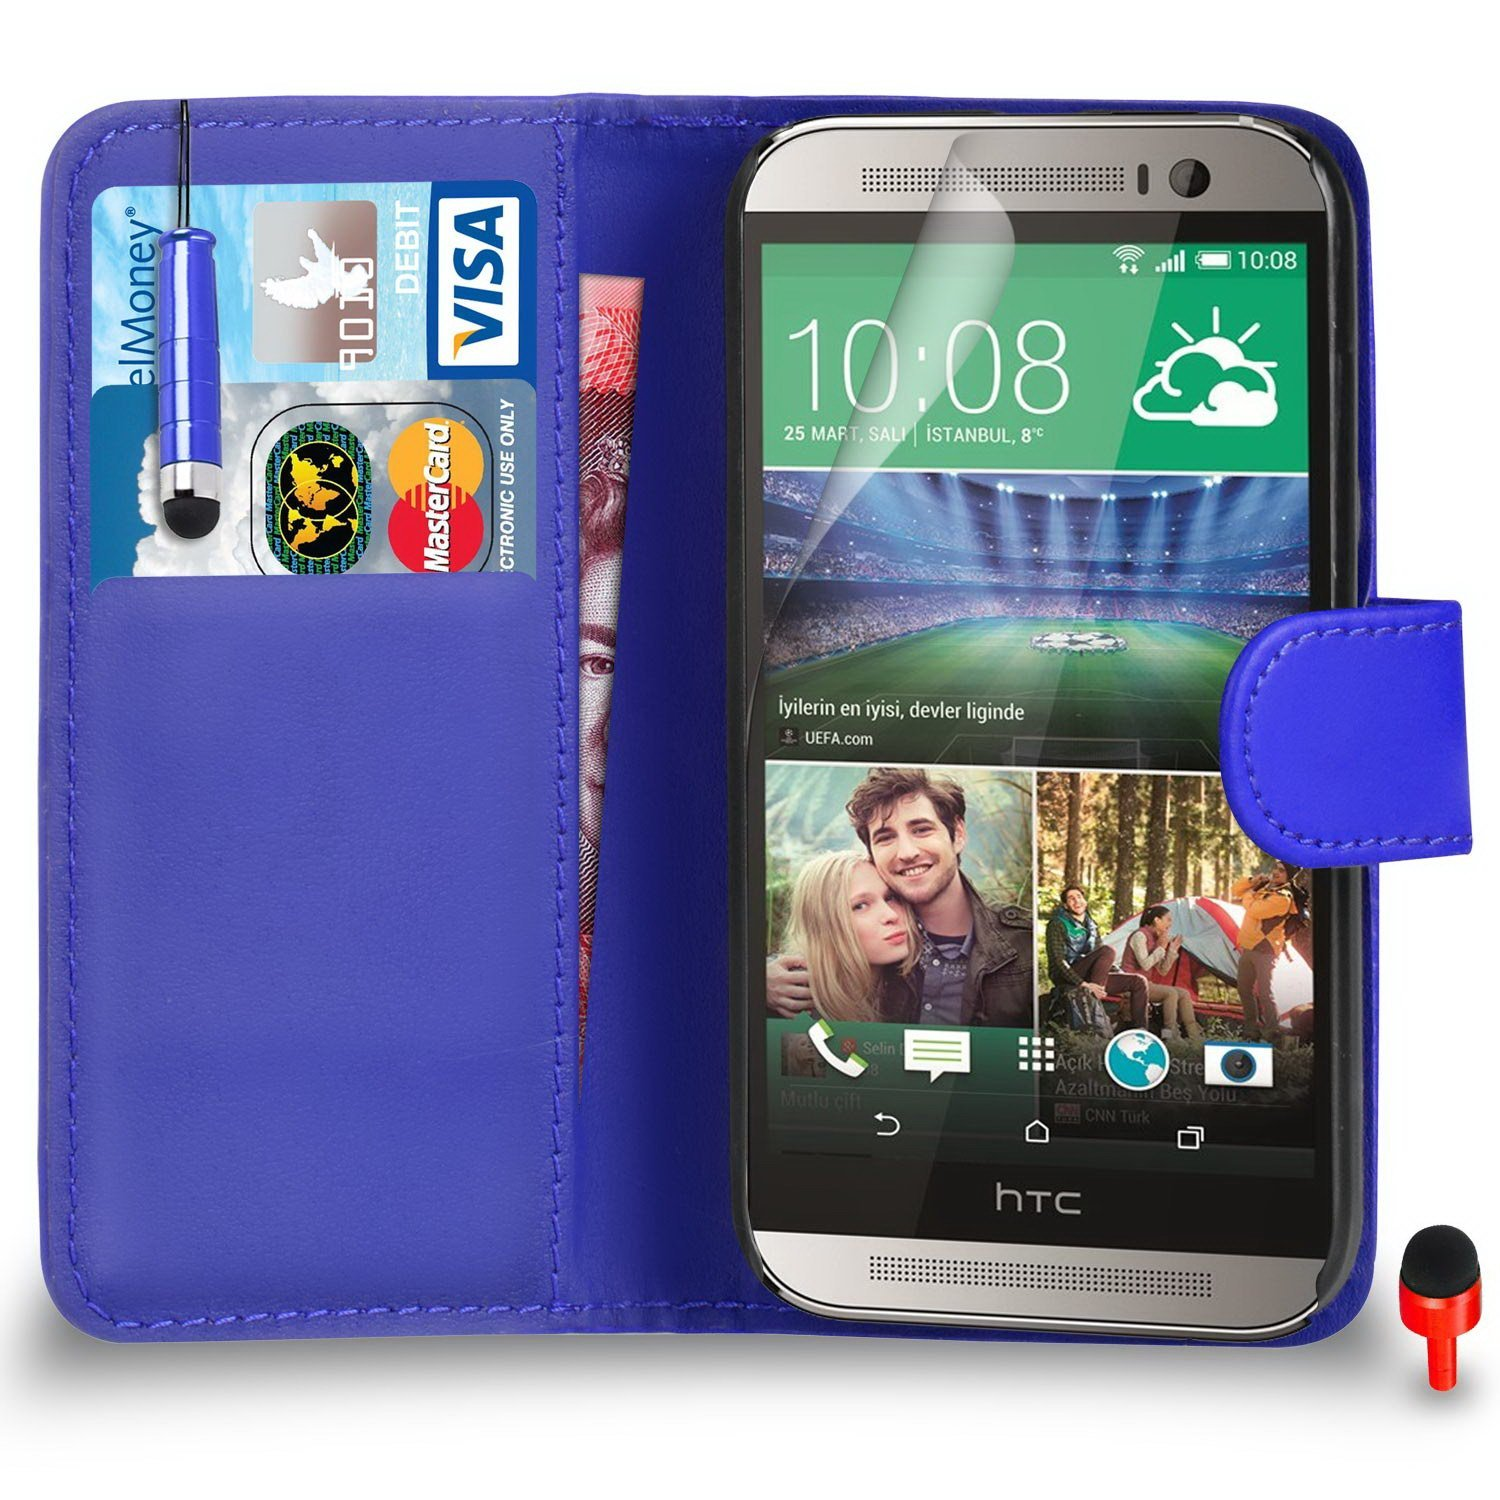 HTC One M8 Premium Leather Blue Wallet Flip Case Cover Pouch + Mini Touch Stylus Pen + Screen Protector & Polishing Cloth SVL1 BY SHUKAN®, (WALLET BLUE)